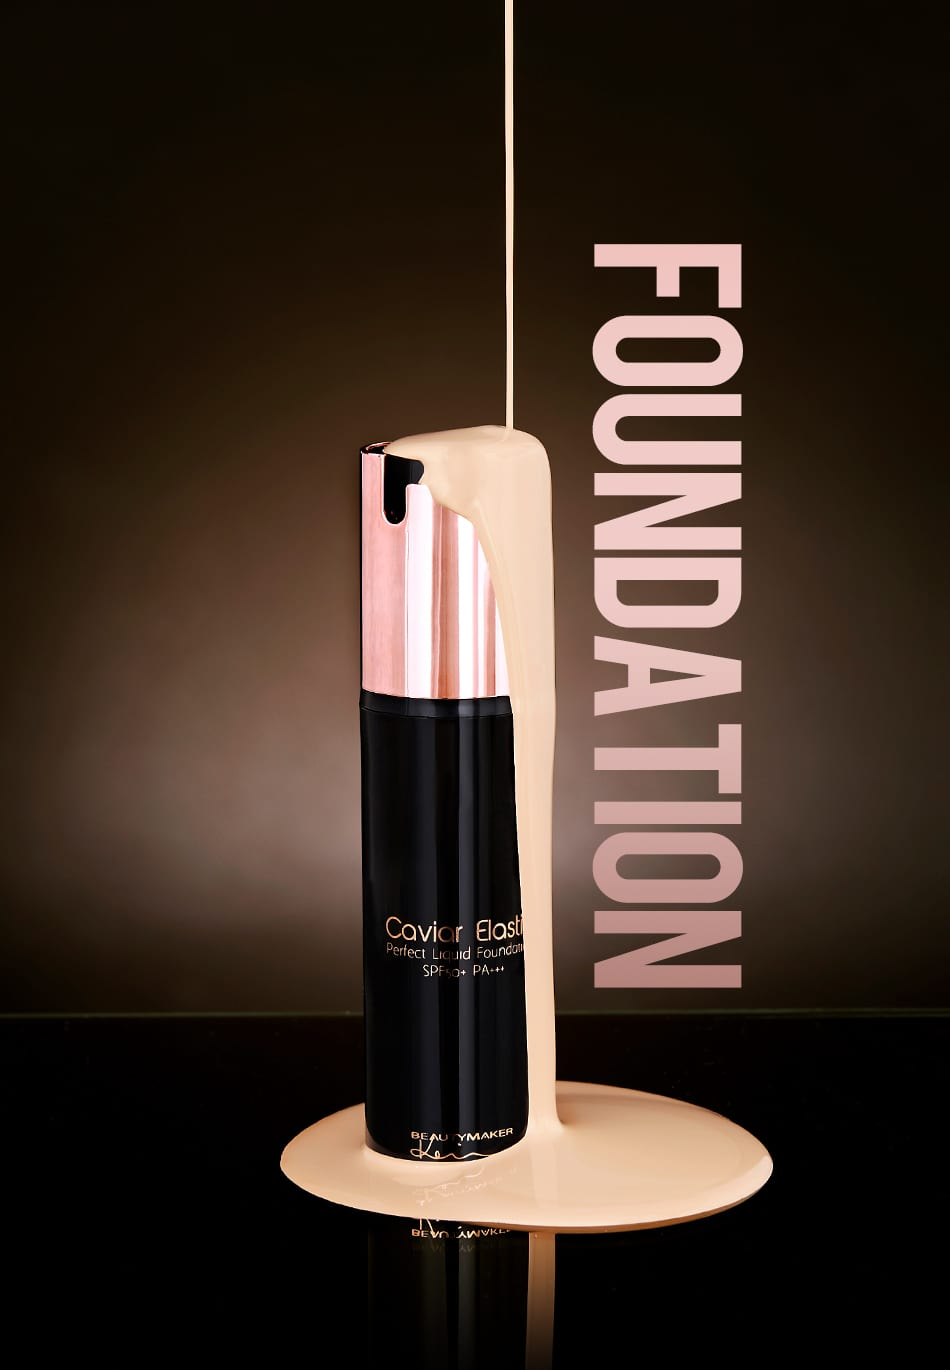 Perfect Liquid Foundation - Product Packaging 01